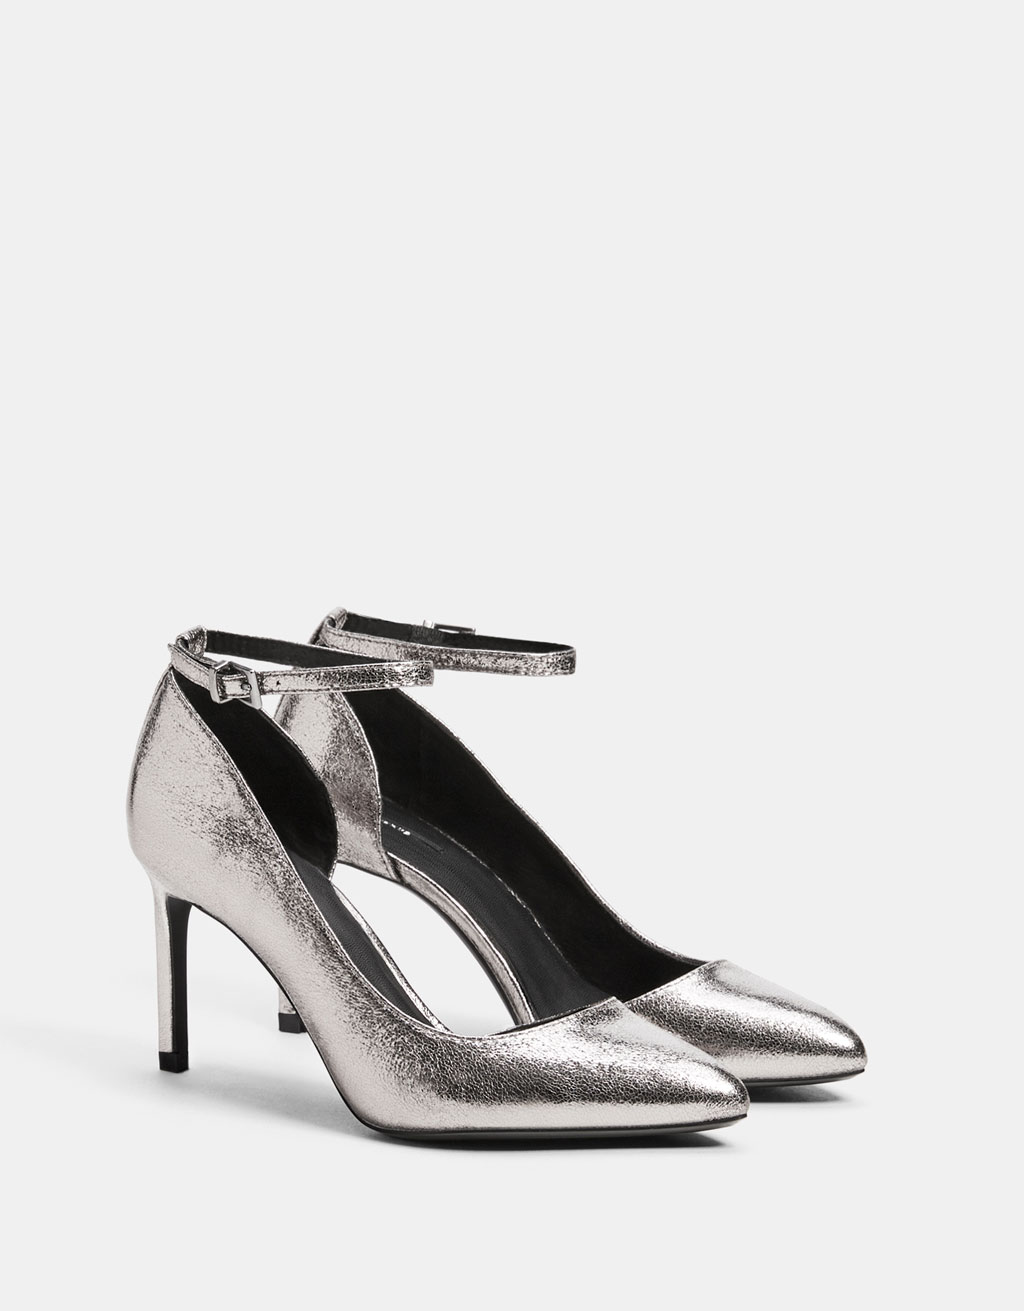 Asymmetric metallic high heel shoes with ankle straps